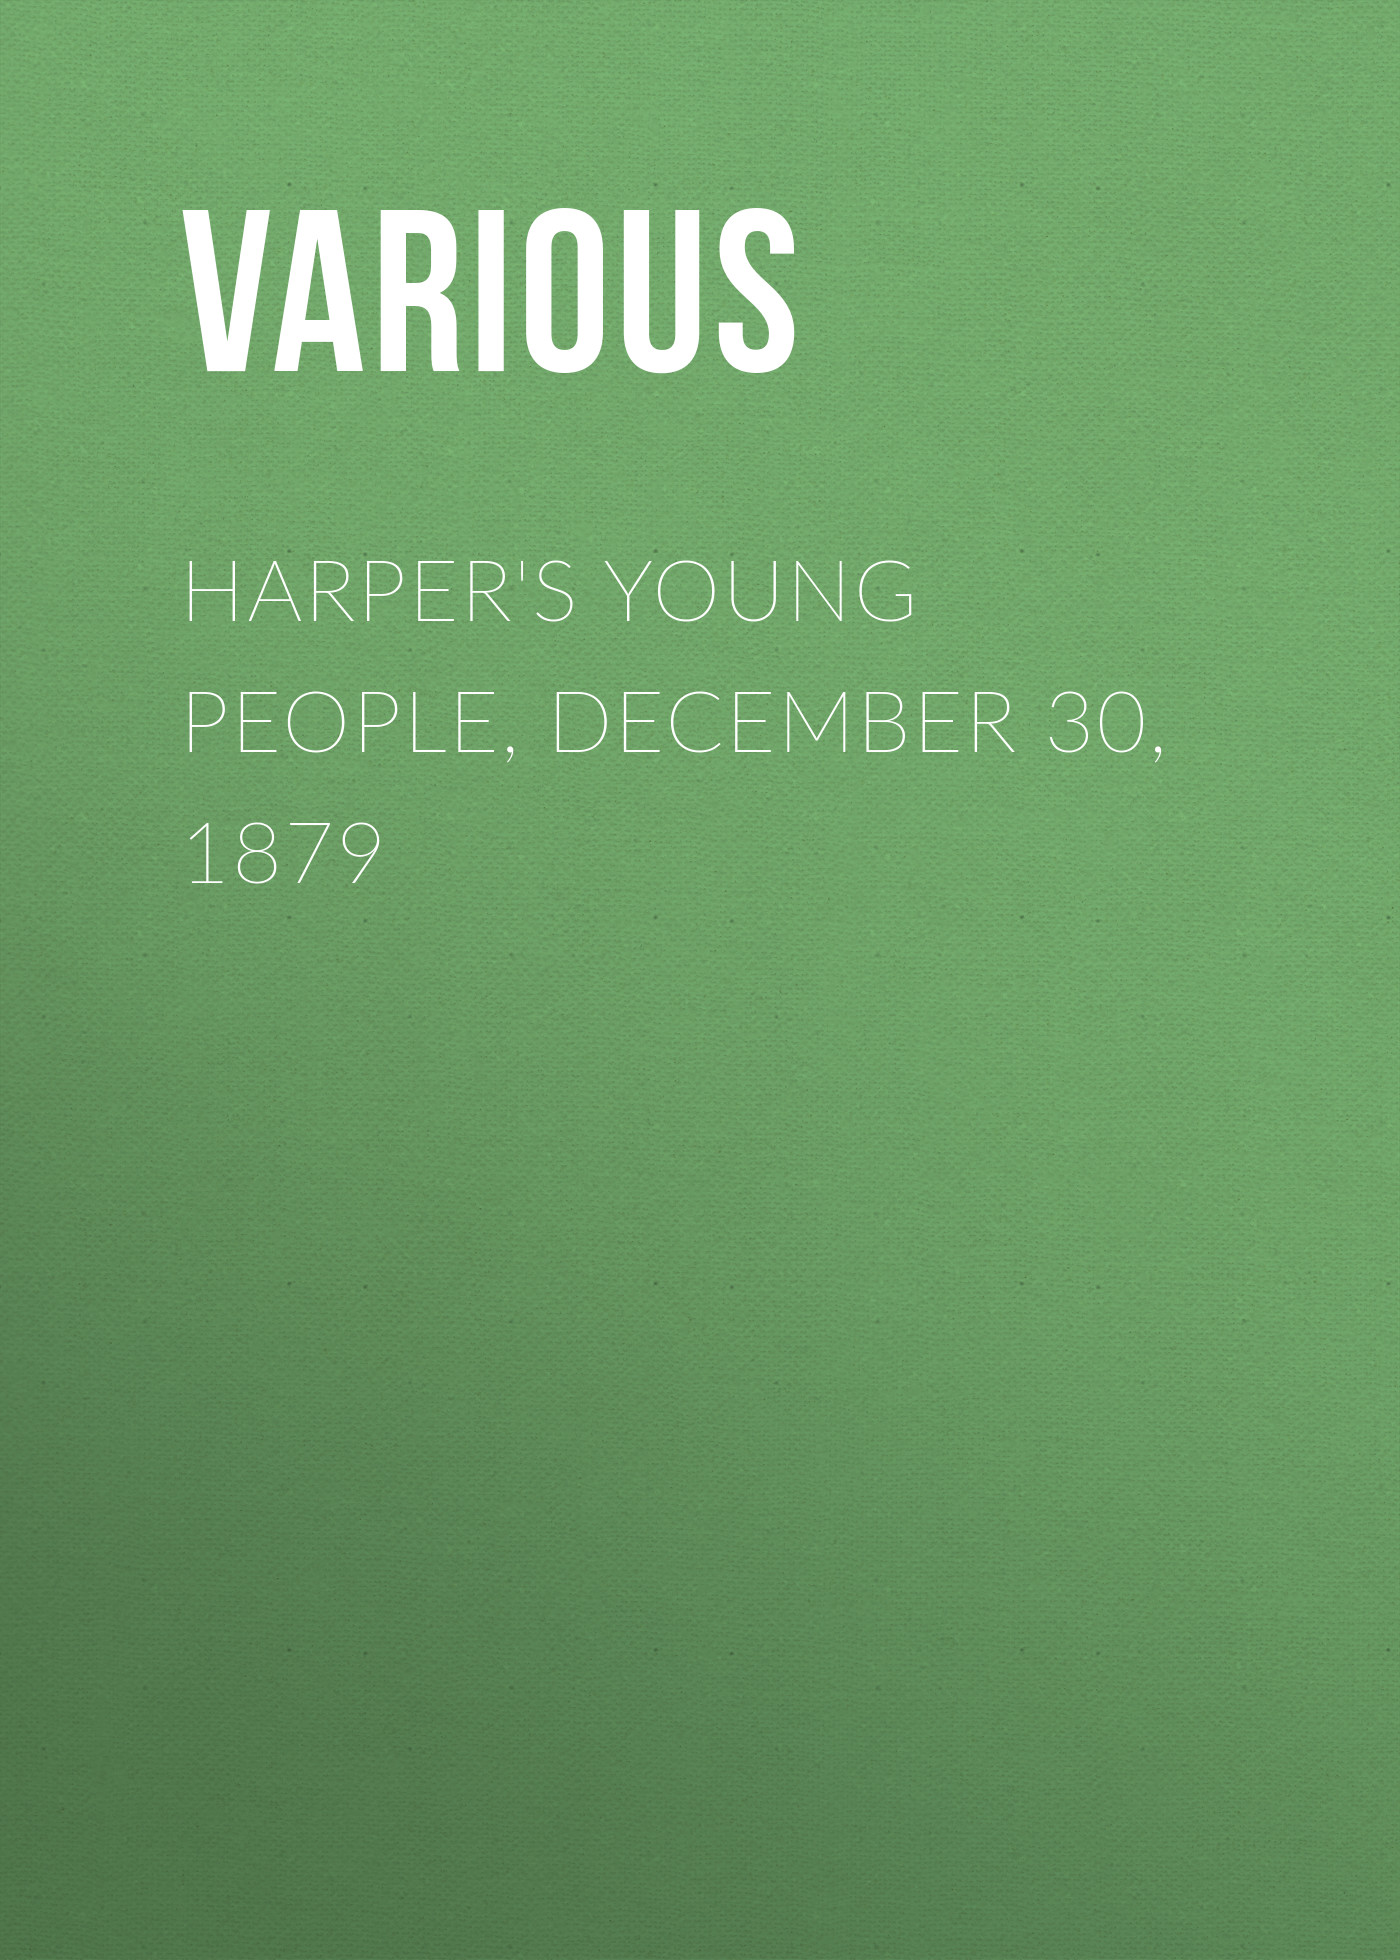 Harper\'s Young People, December 30, 1879 ( Various  )